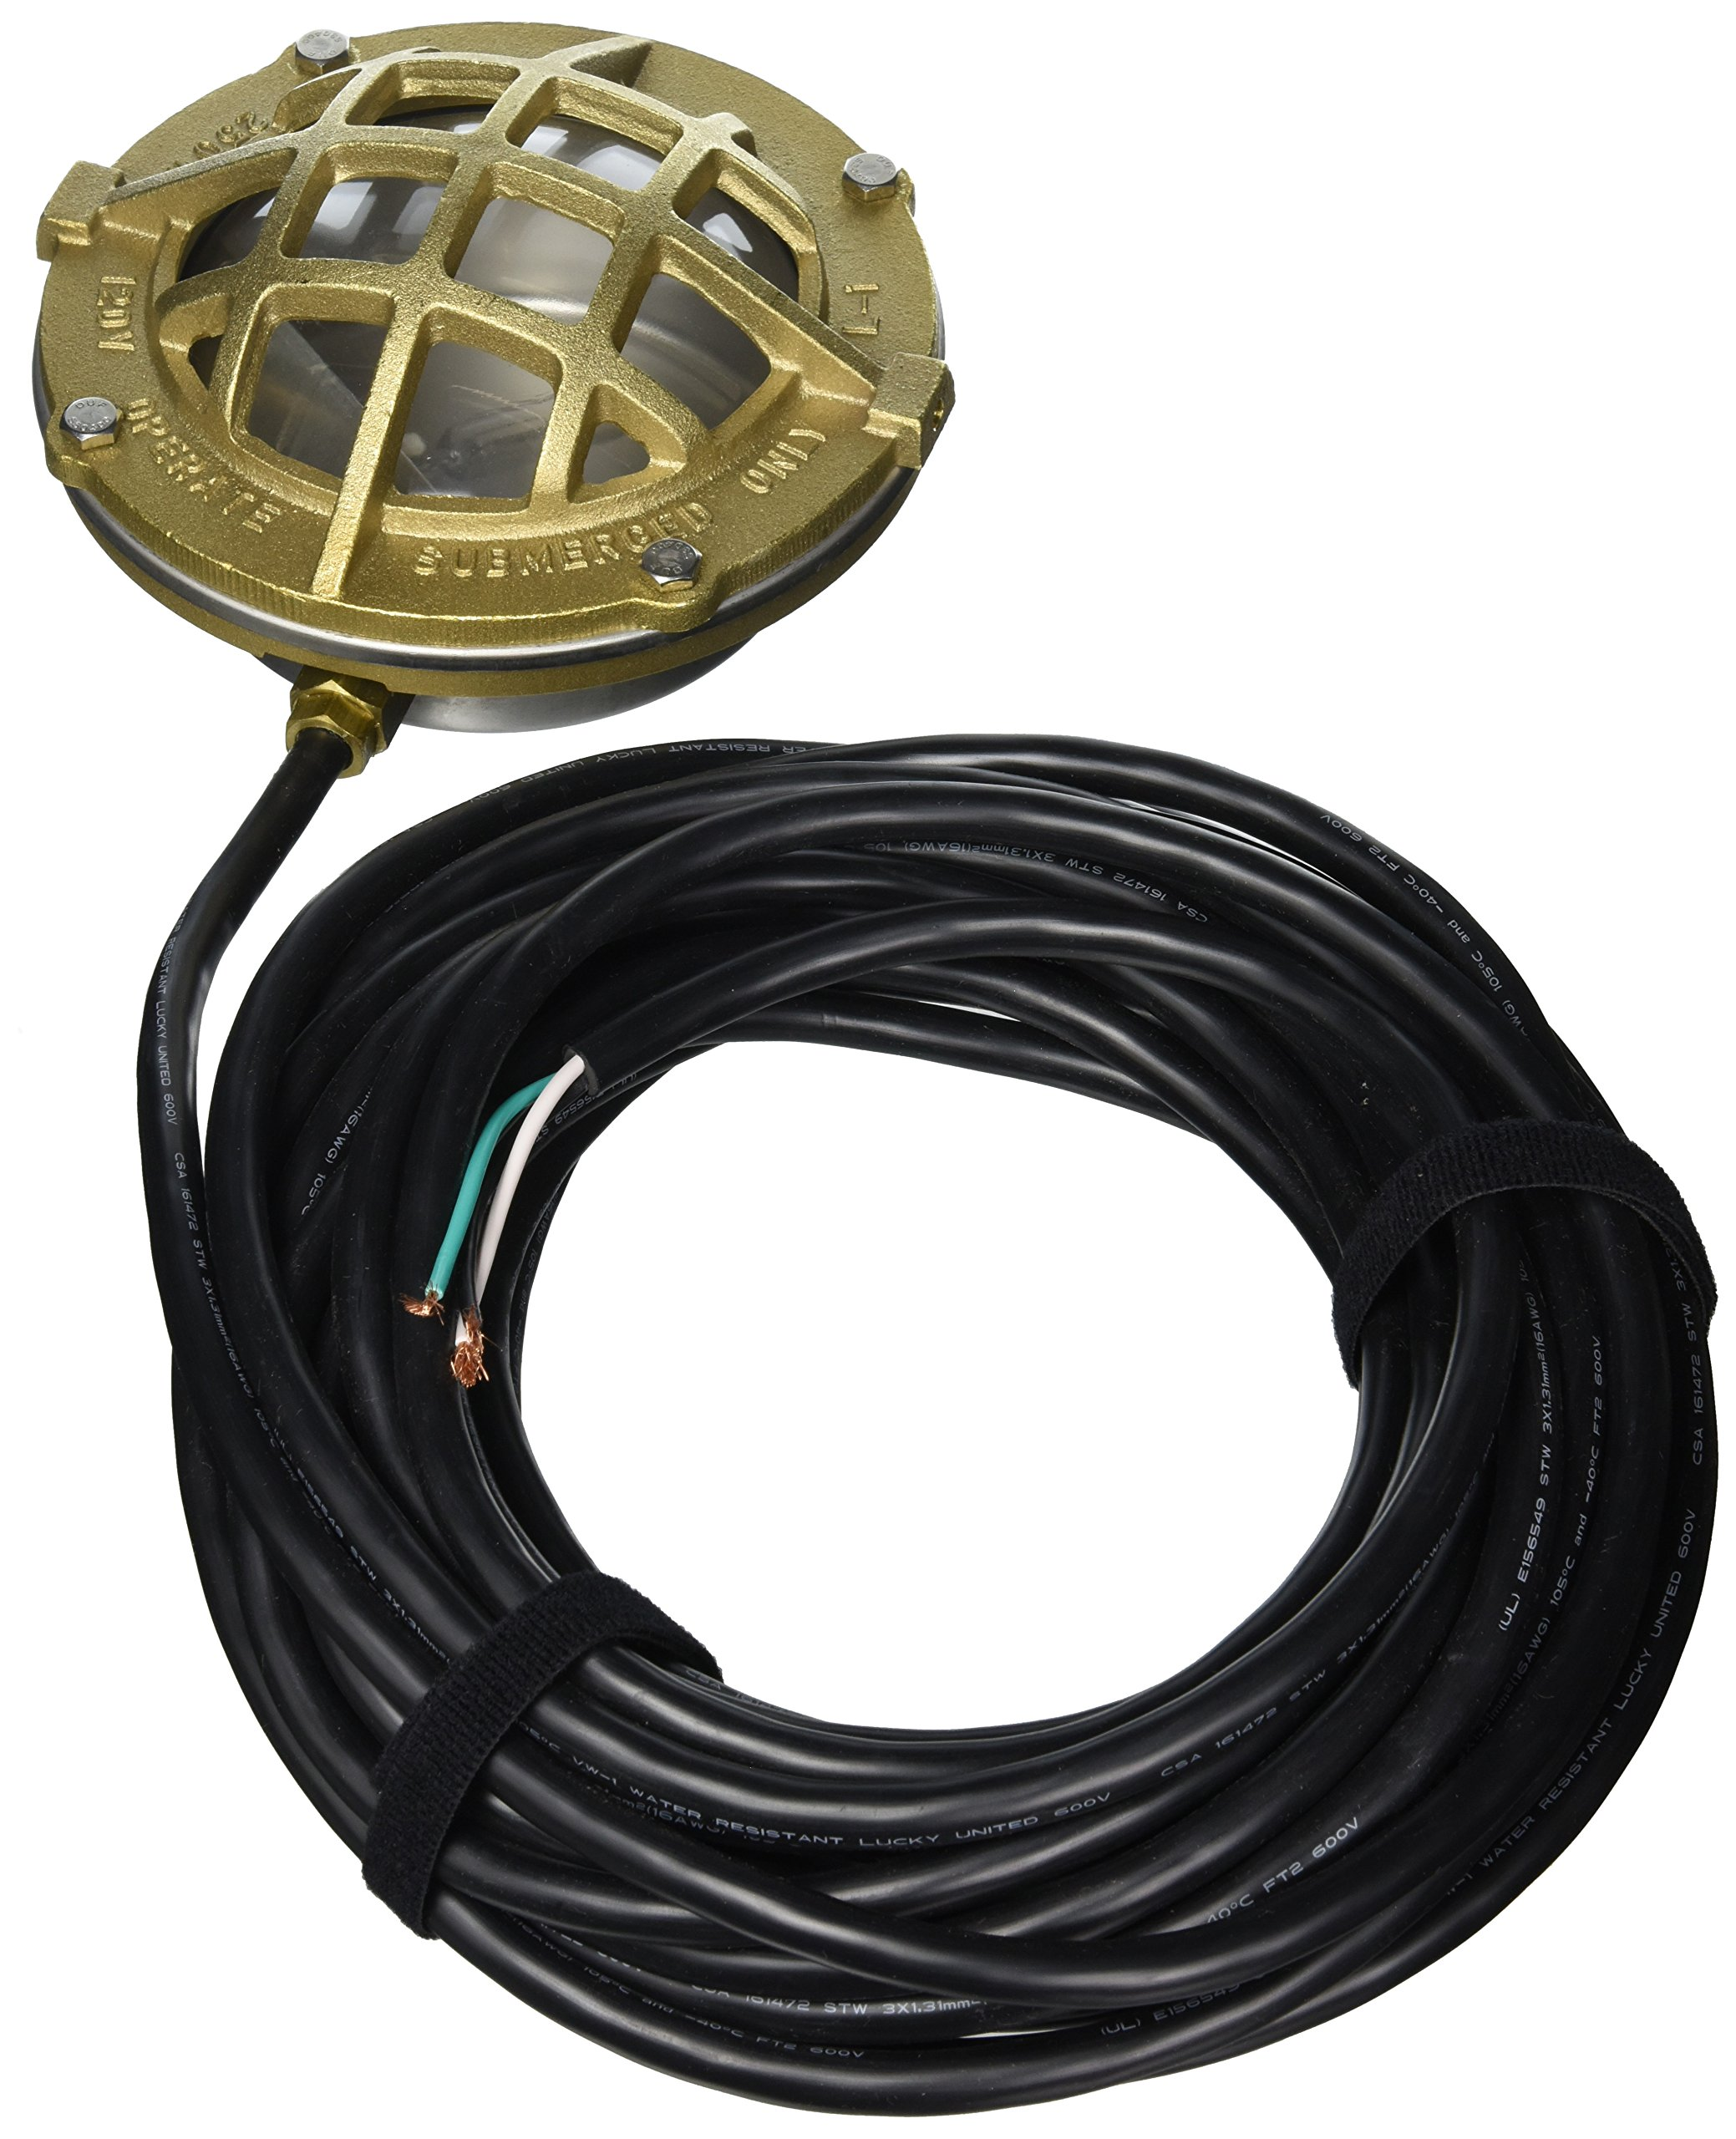 Little Giant 517414 L1C-50 Bronze and SST Underwater Light with 50-Feet Cord by Little Giant